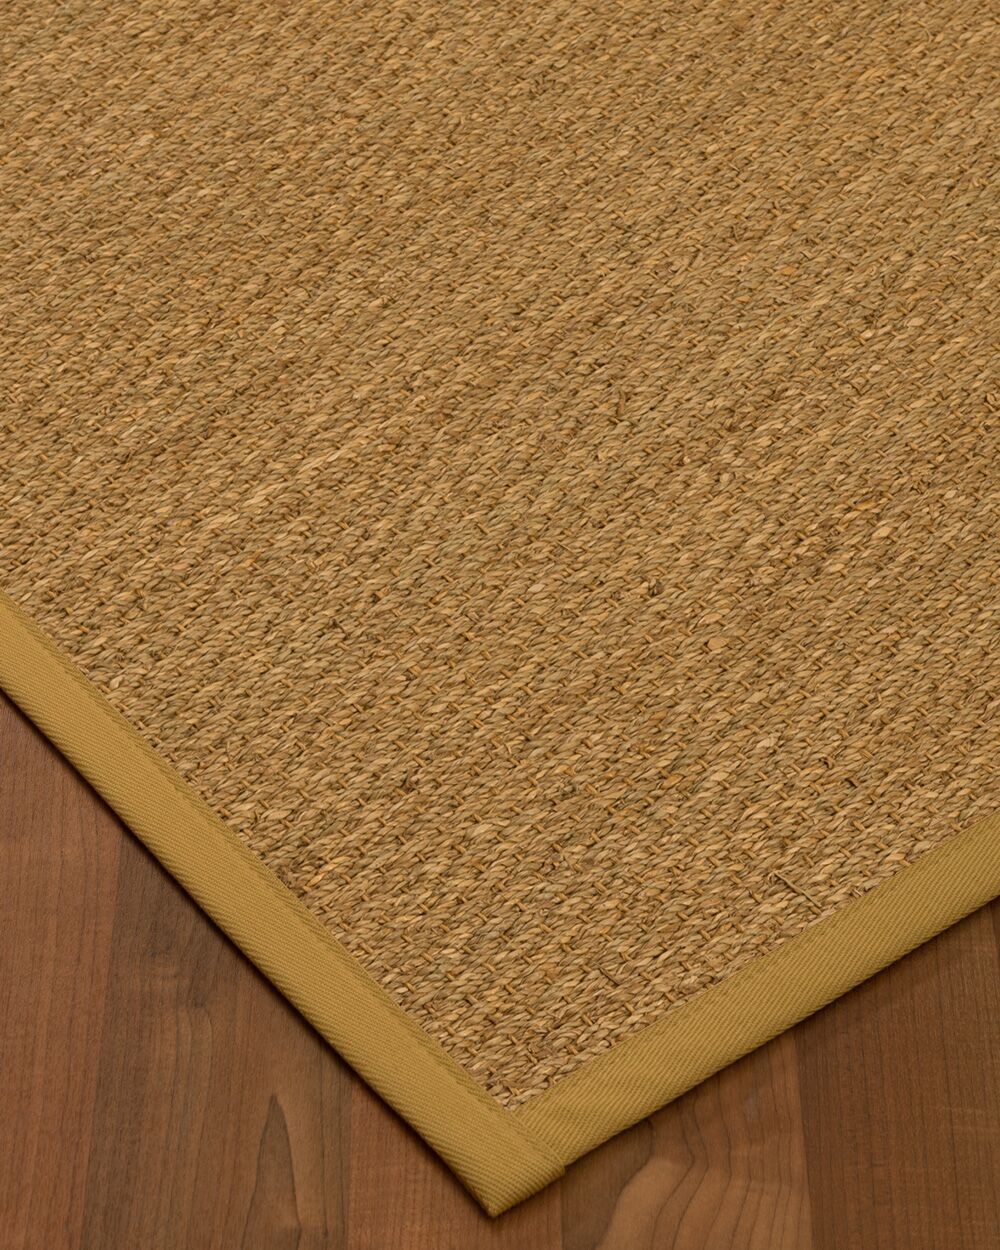 Anya Border Hand-Woven Beige/Sage Area Rug Rug Size: Rectangle 6' x 9', Rug Pad Included: Yes